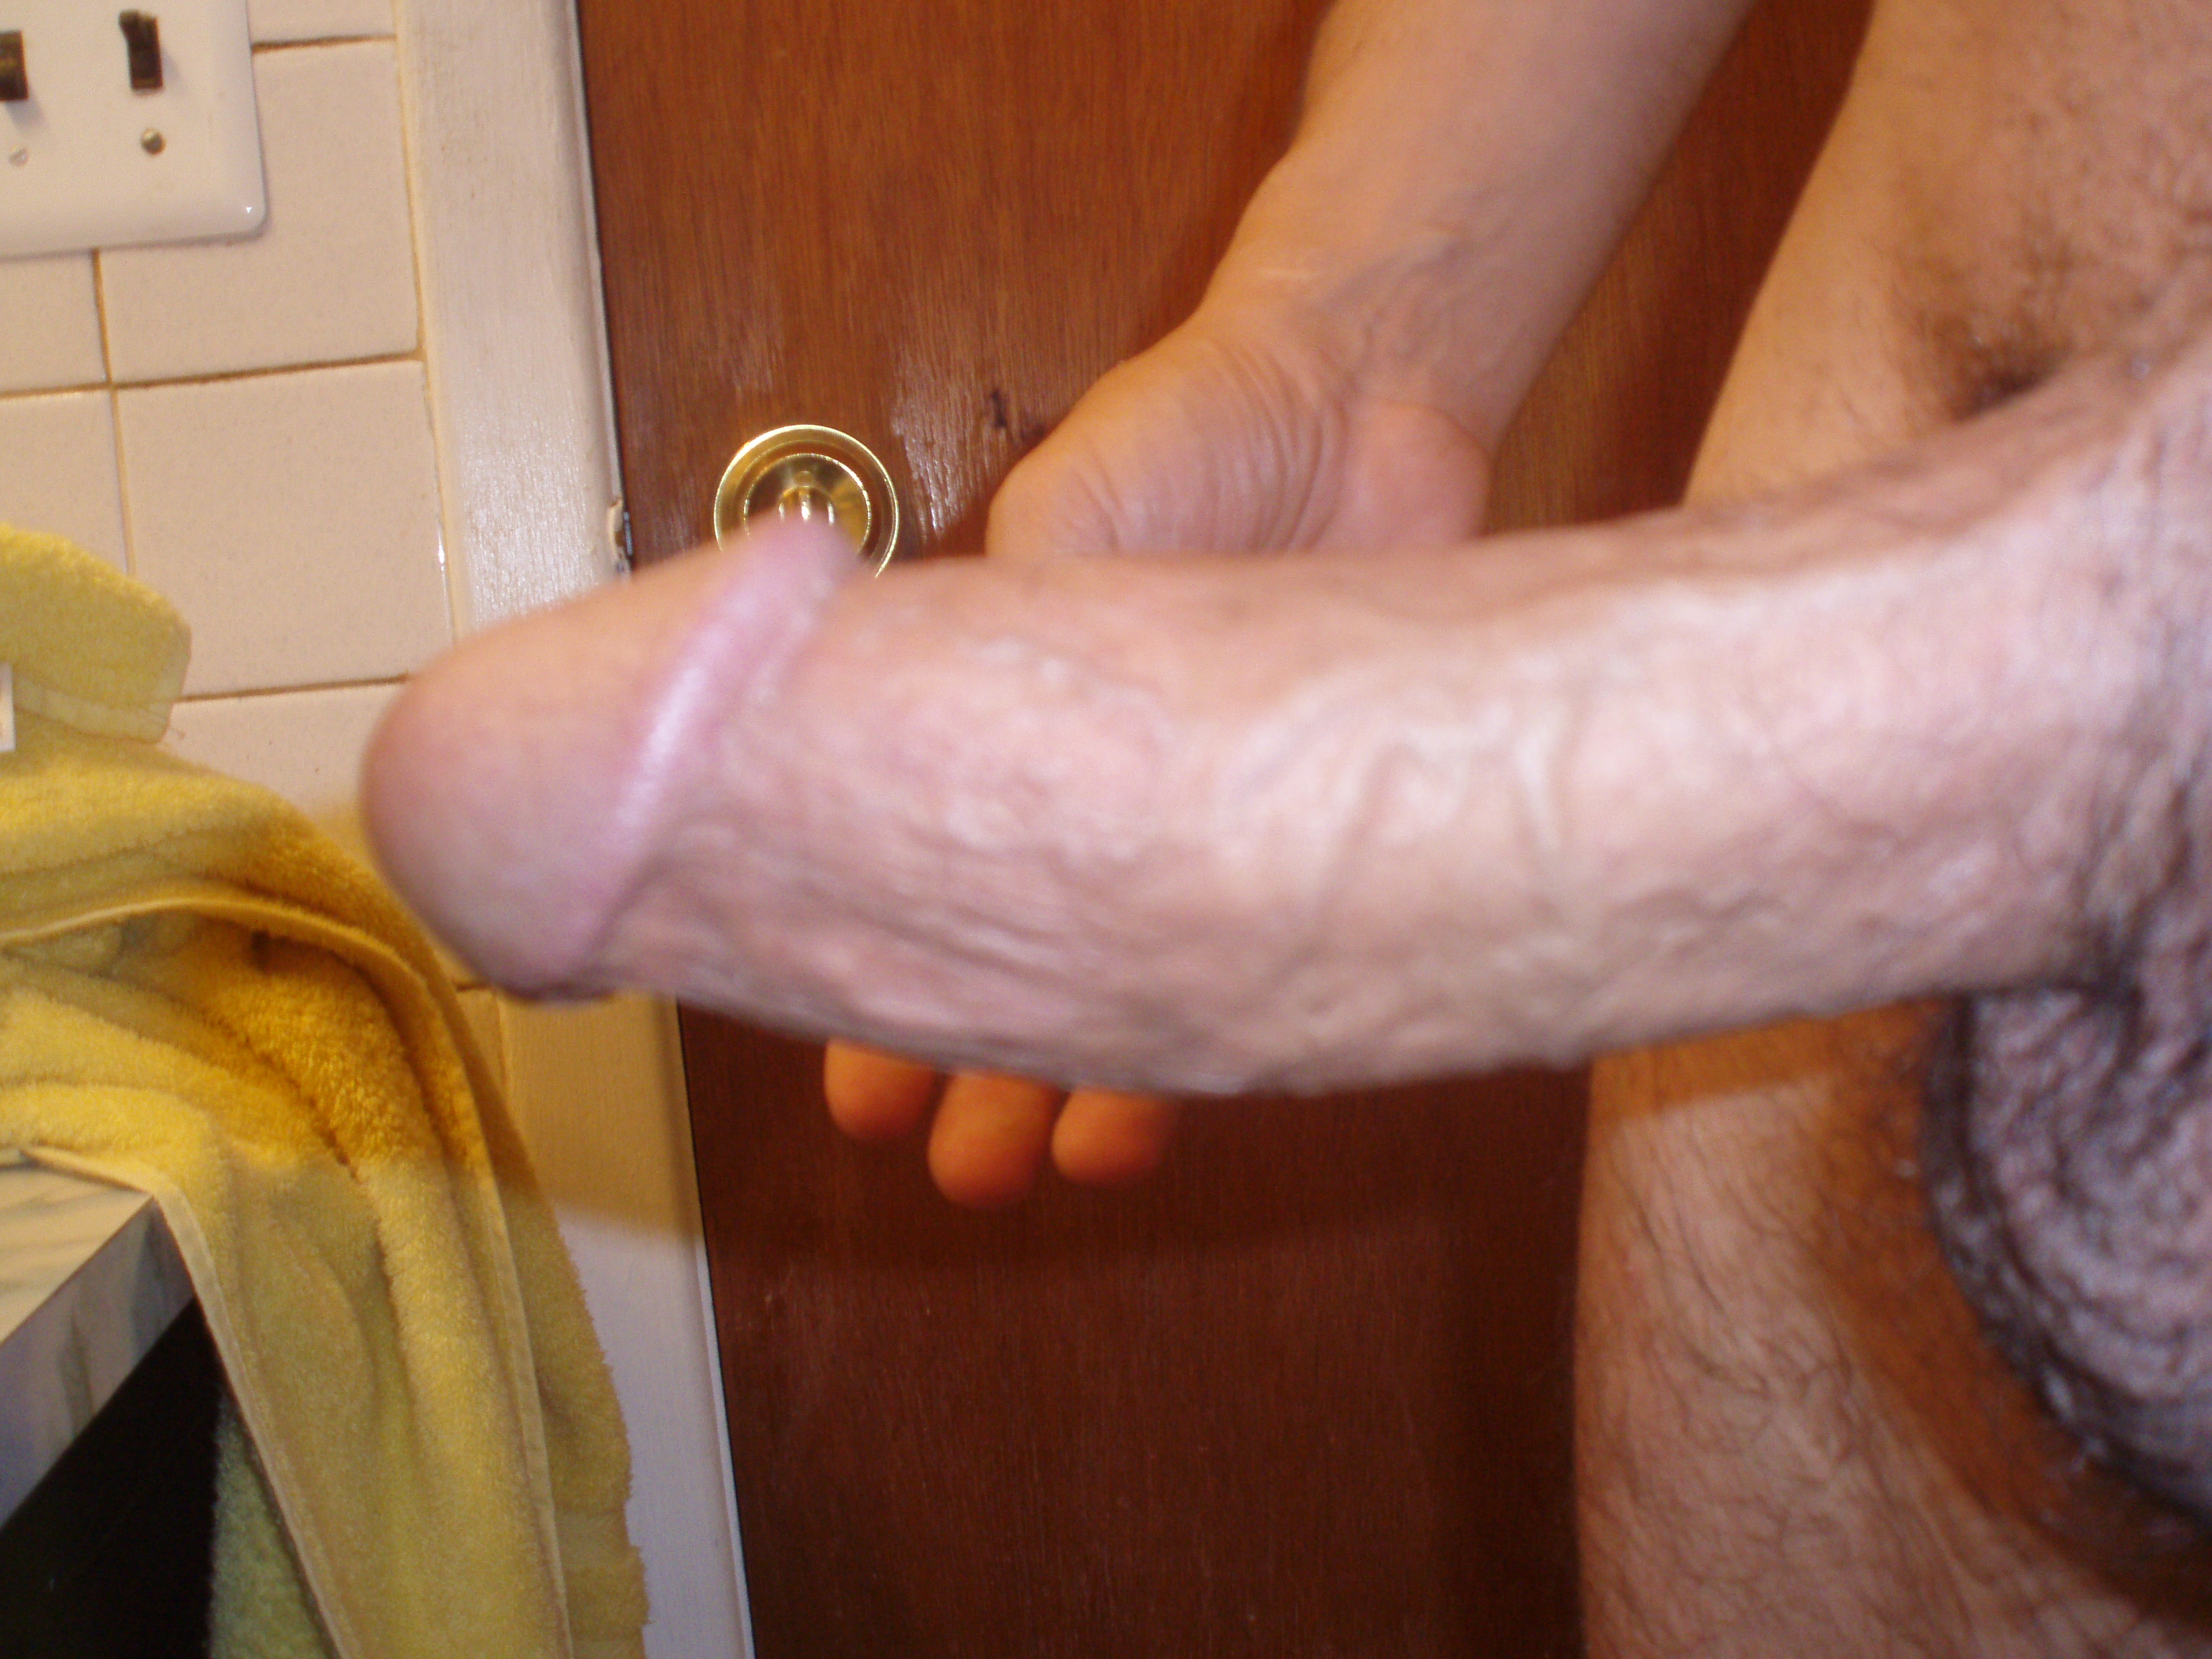 Charming is my cock big enough consider